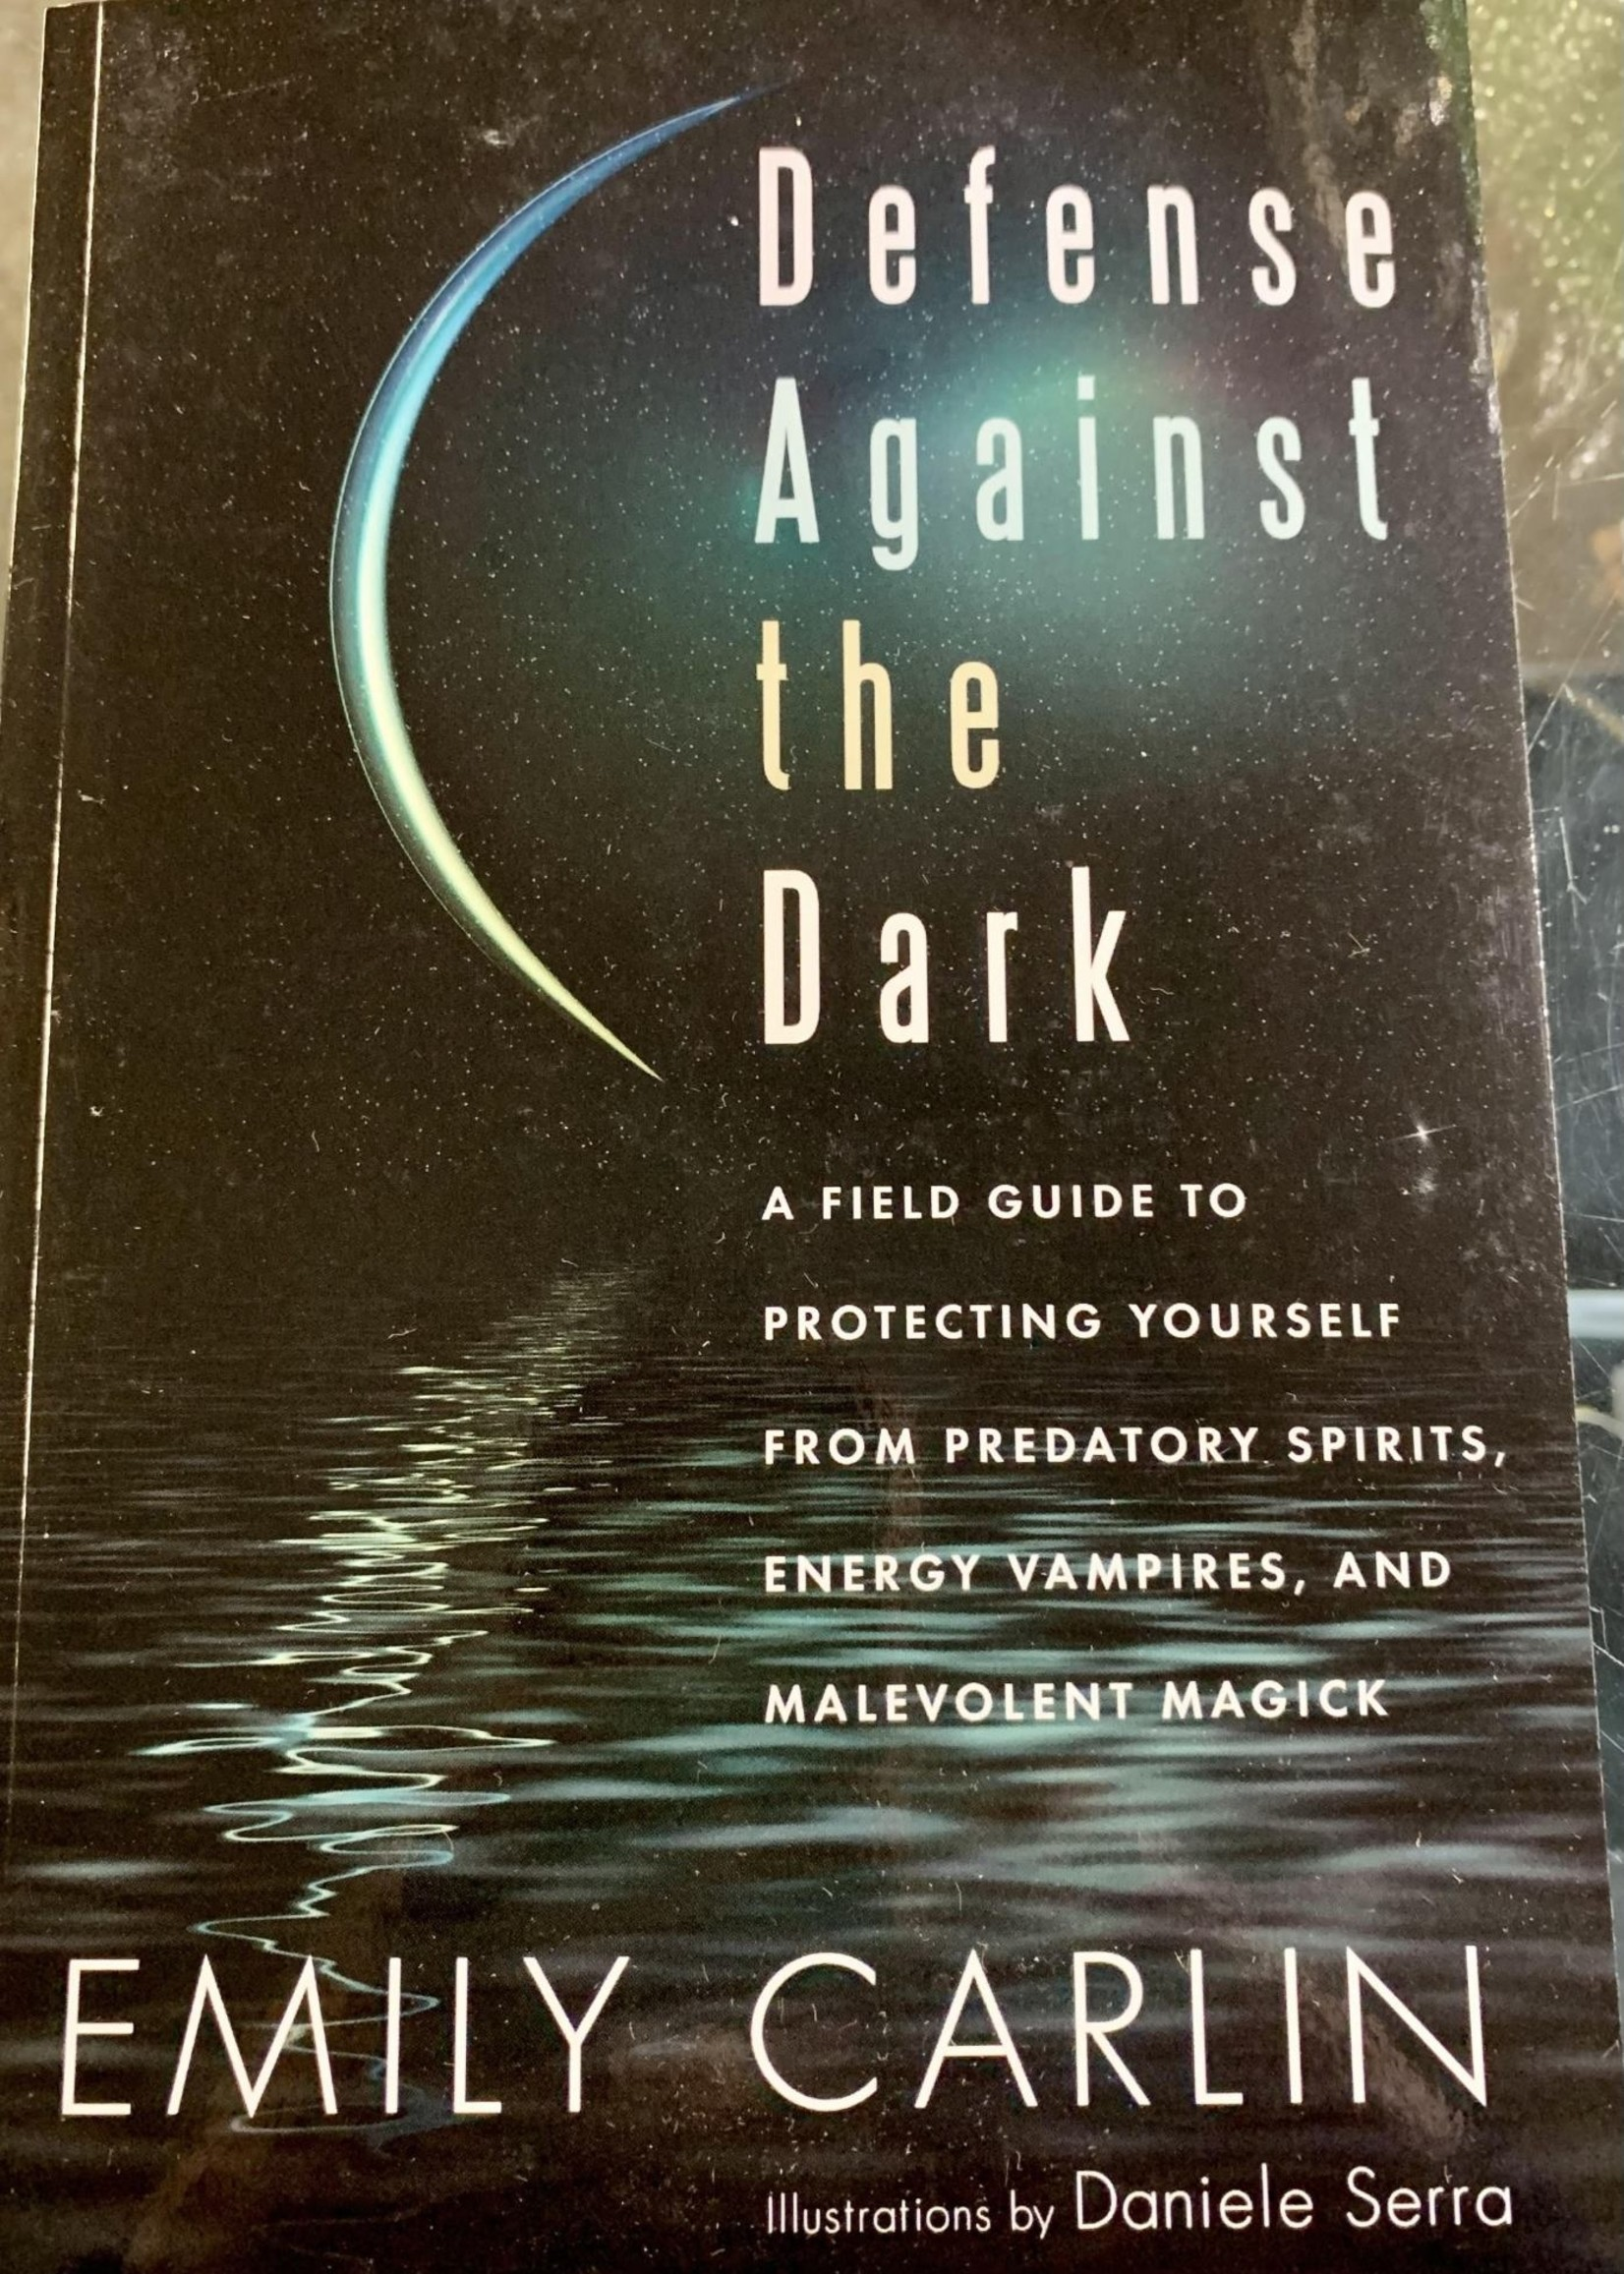 Defense Against the Dark A Field Guide to Protecting Yourself from Predatory Spirits, Energy Vampires and Malevolent Magic - Author Emily Carlin, Illustrator Daniele Serra